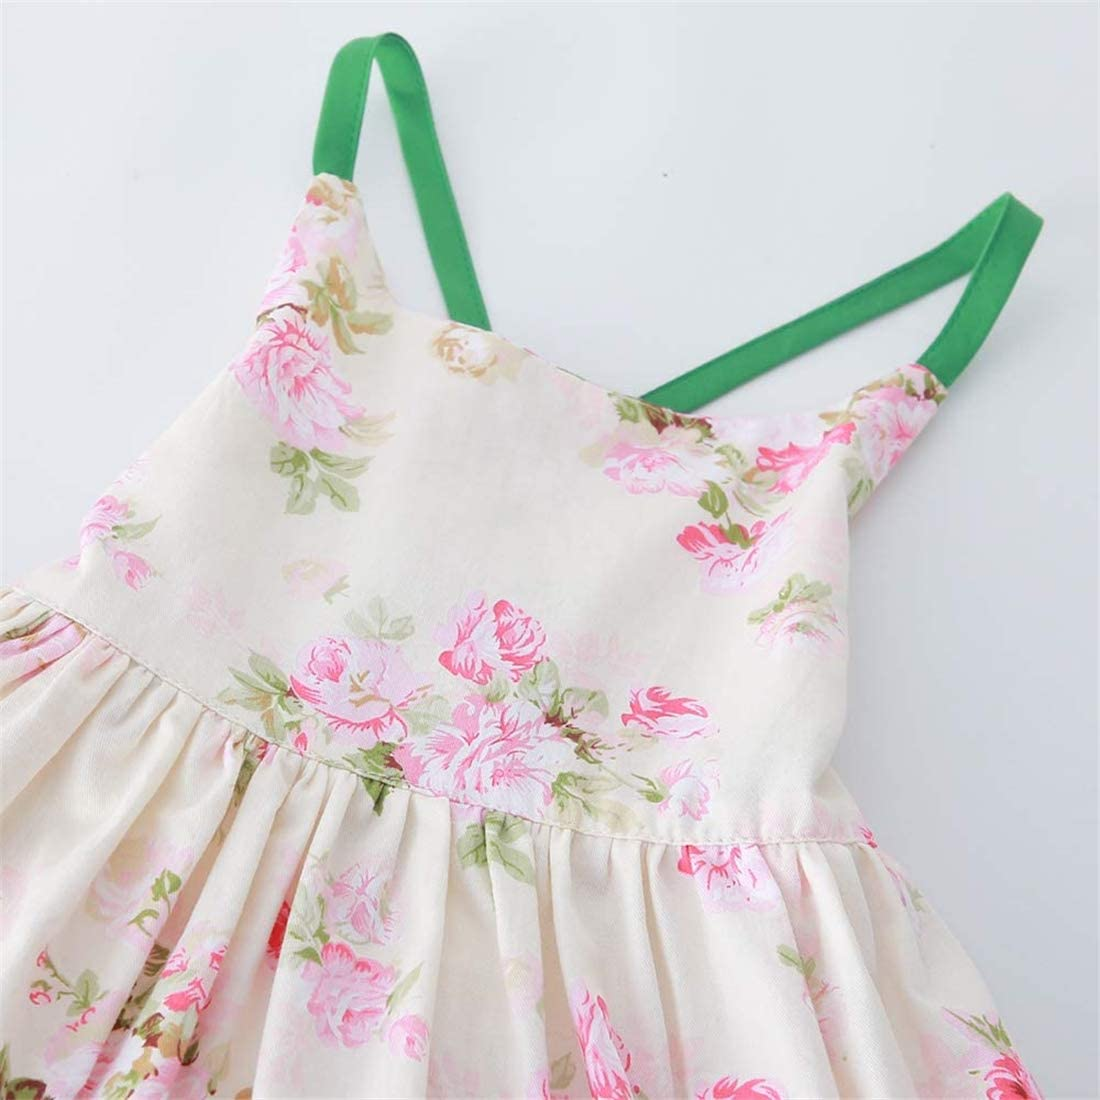 KISSOURBABY Girls Dresses Summer Kids Baby/ Party/ Floral Dress 1-10 Years